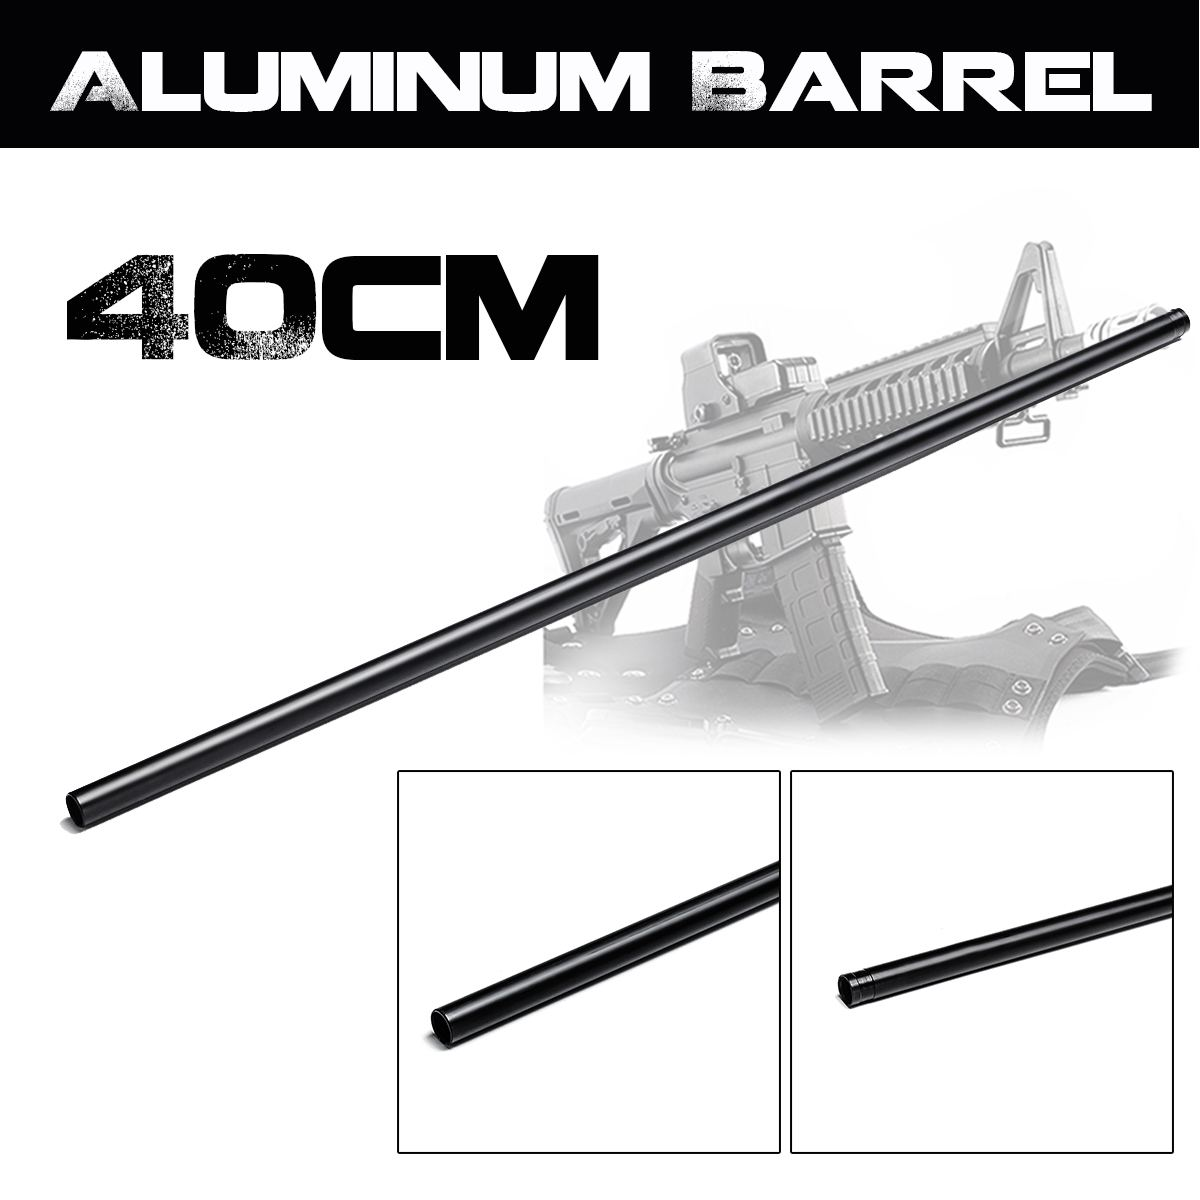 40cm Black Upgrade Aluminum Barrel For Jinming 8th M4A1 Gel Ball Blasters Toy Guns Replacement Accessories